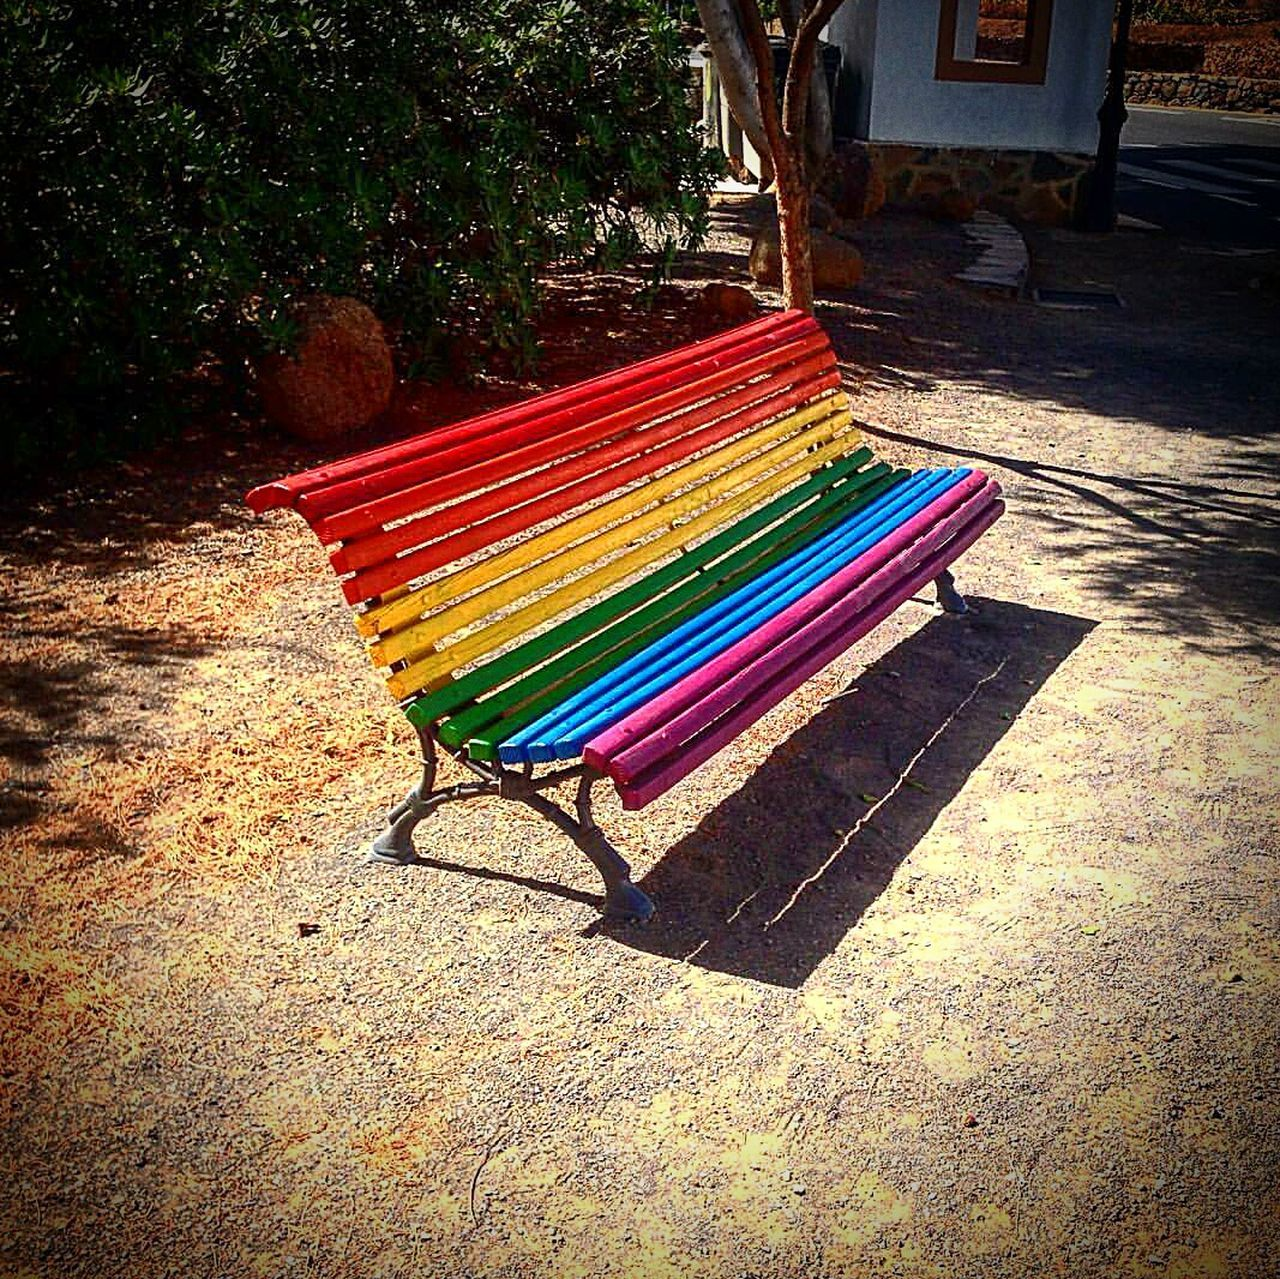 Arcobaleno  Arcoiris🌈 Colour Love Multi Colored Day No People Colorful Color Photography Colour Of Life Fuerteventura Aroundtheworld Chairswithstories Art Artistic Photo Artphotography